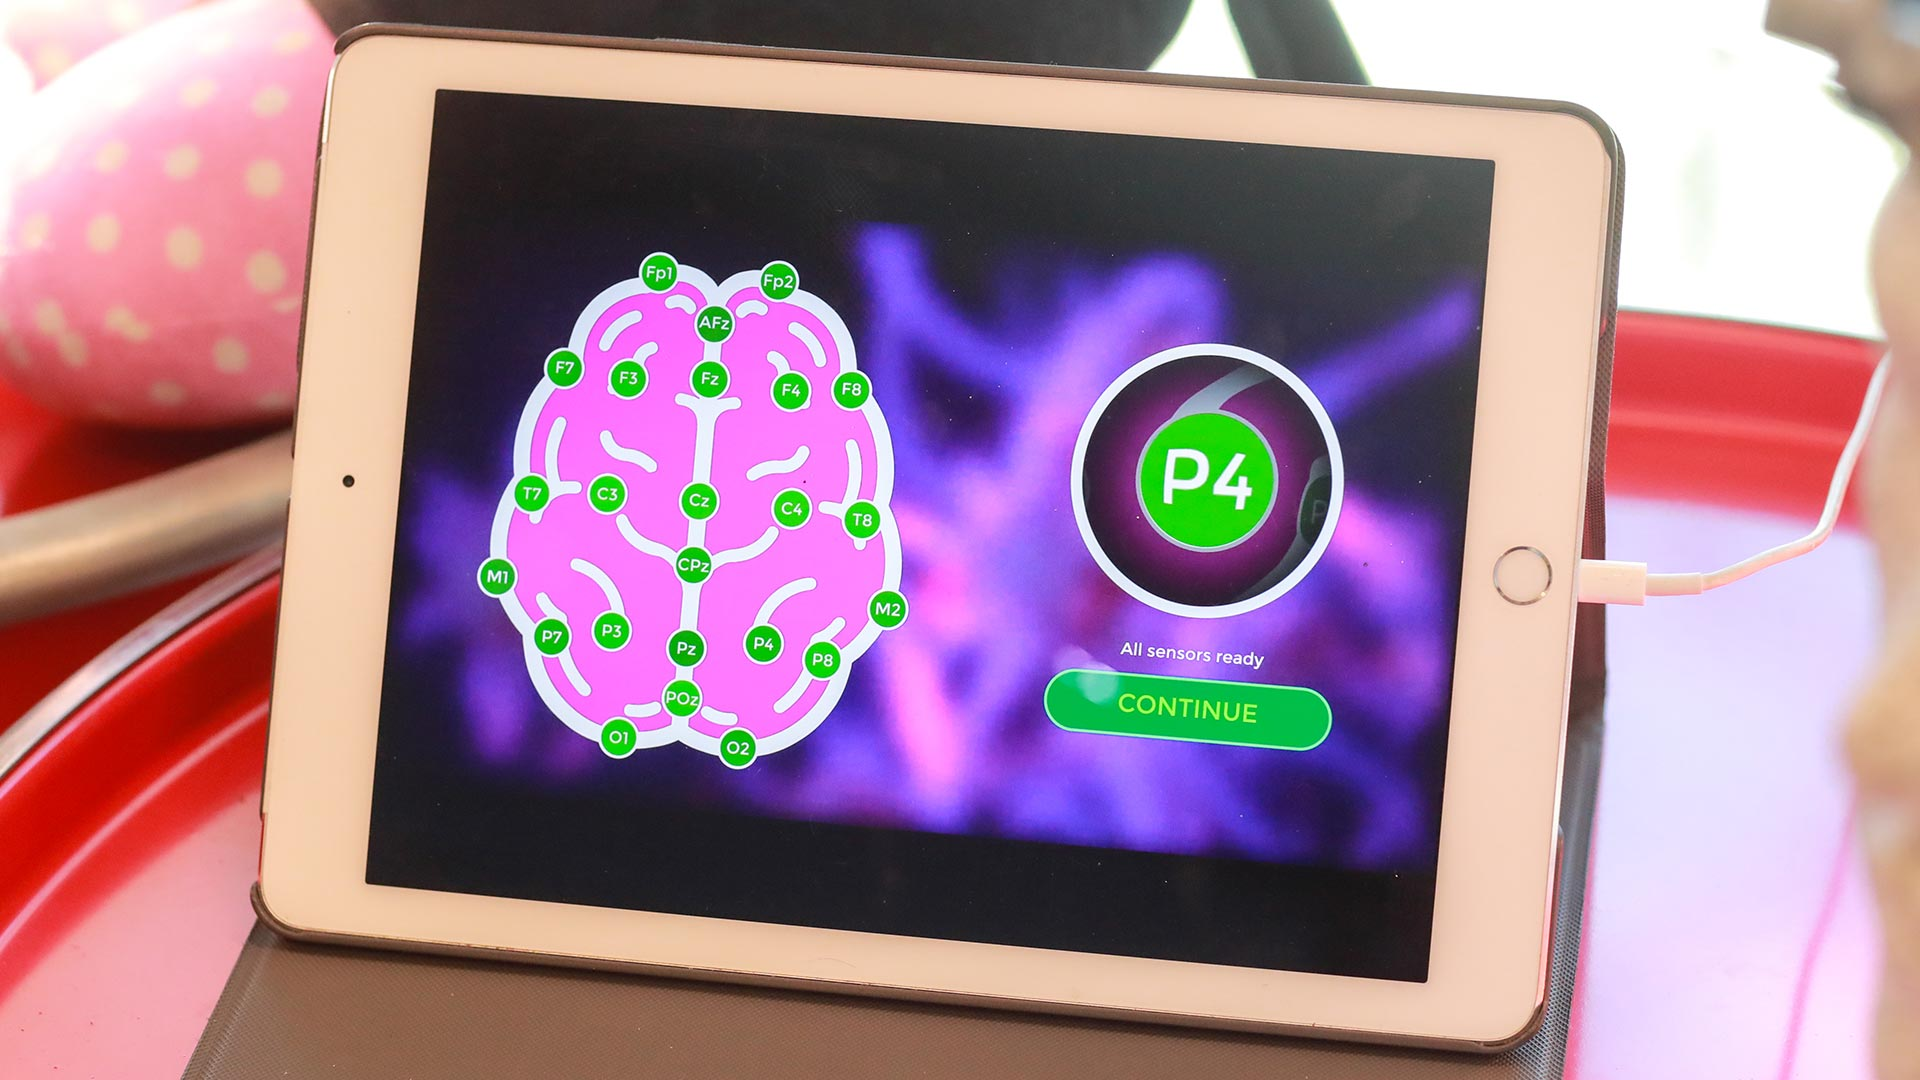 Tablet device running BrainTrip app